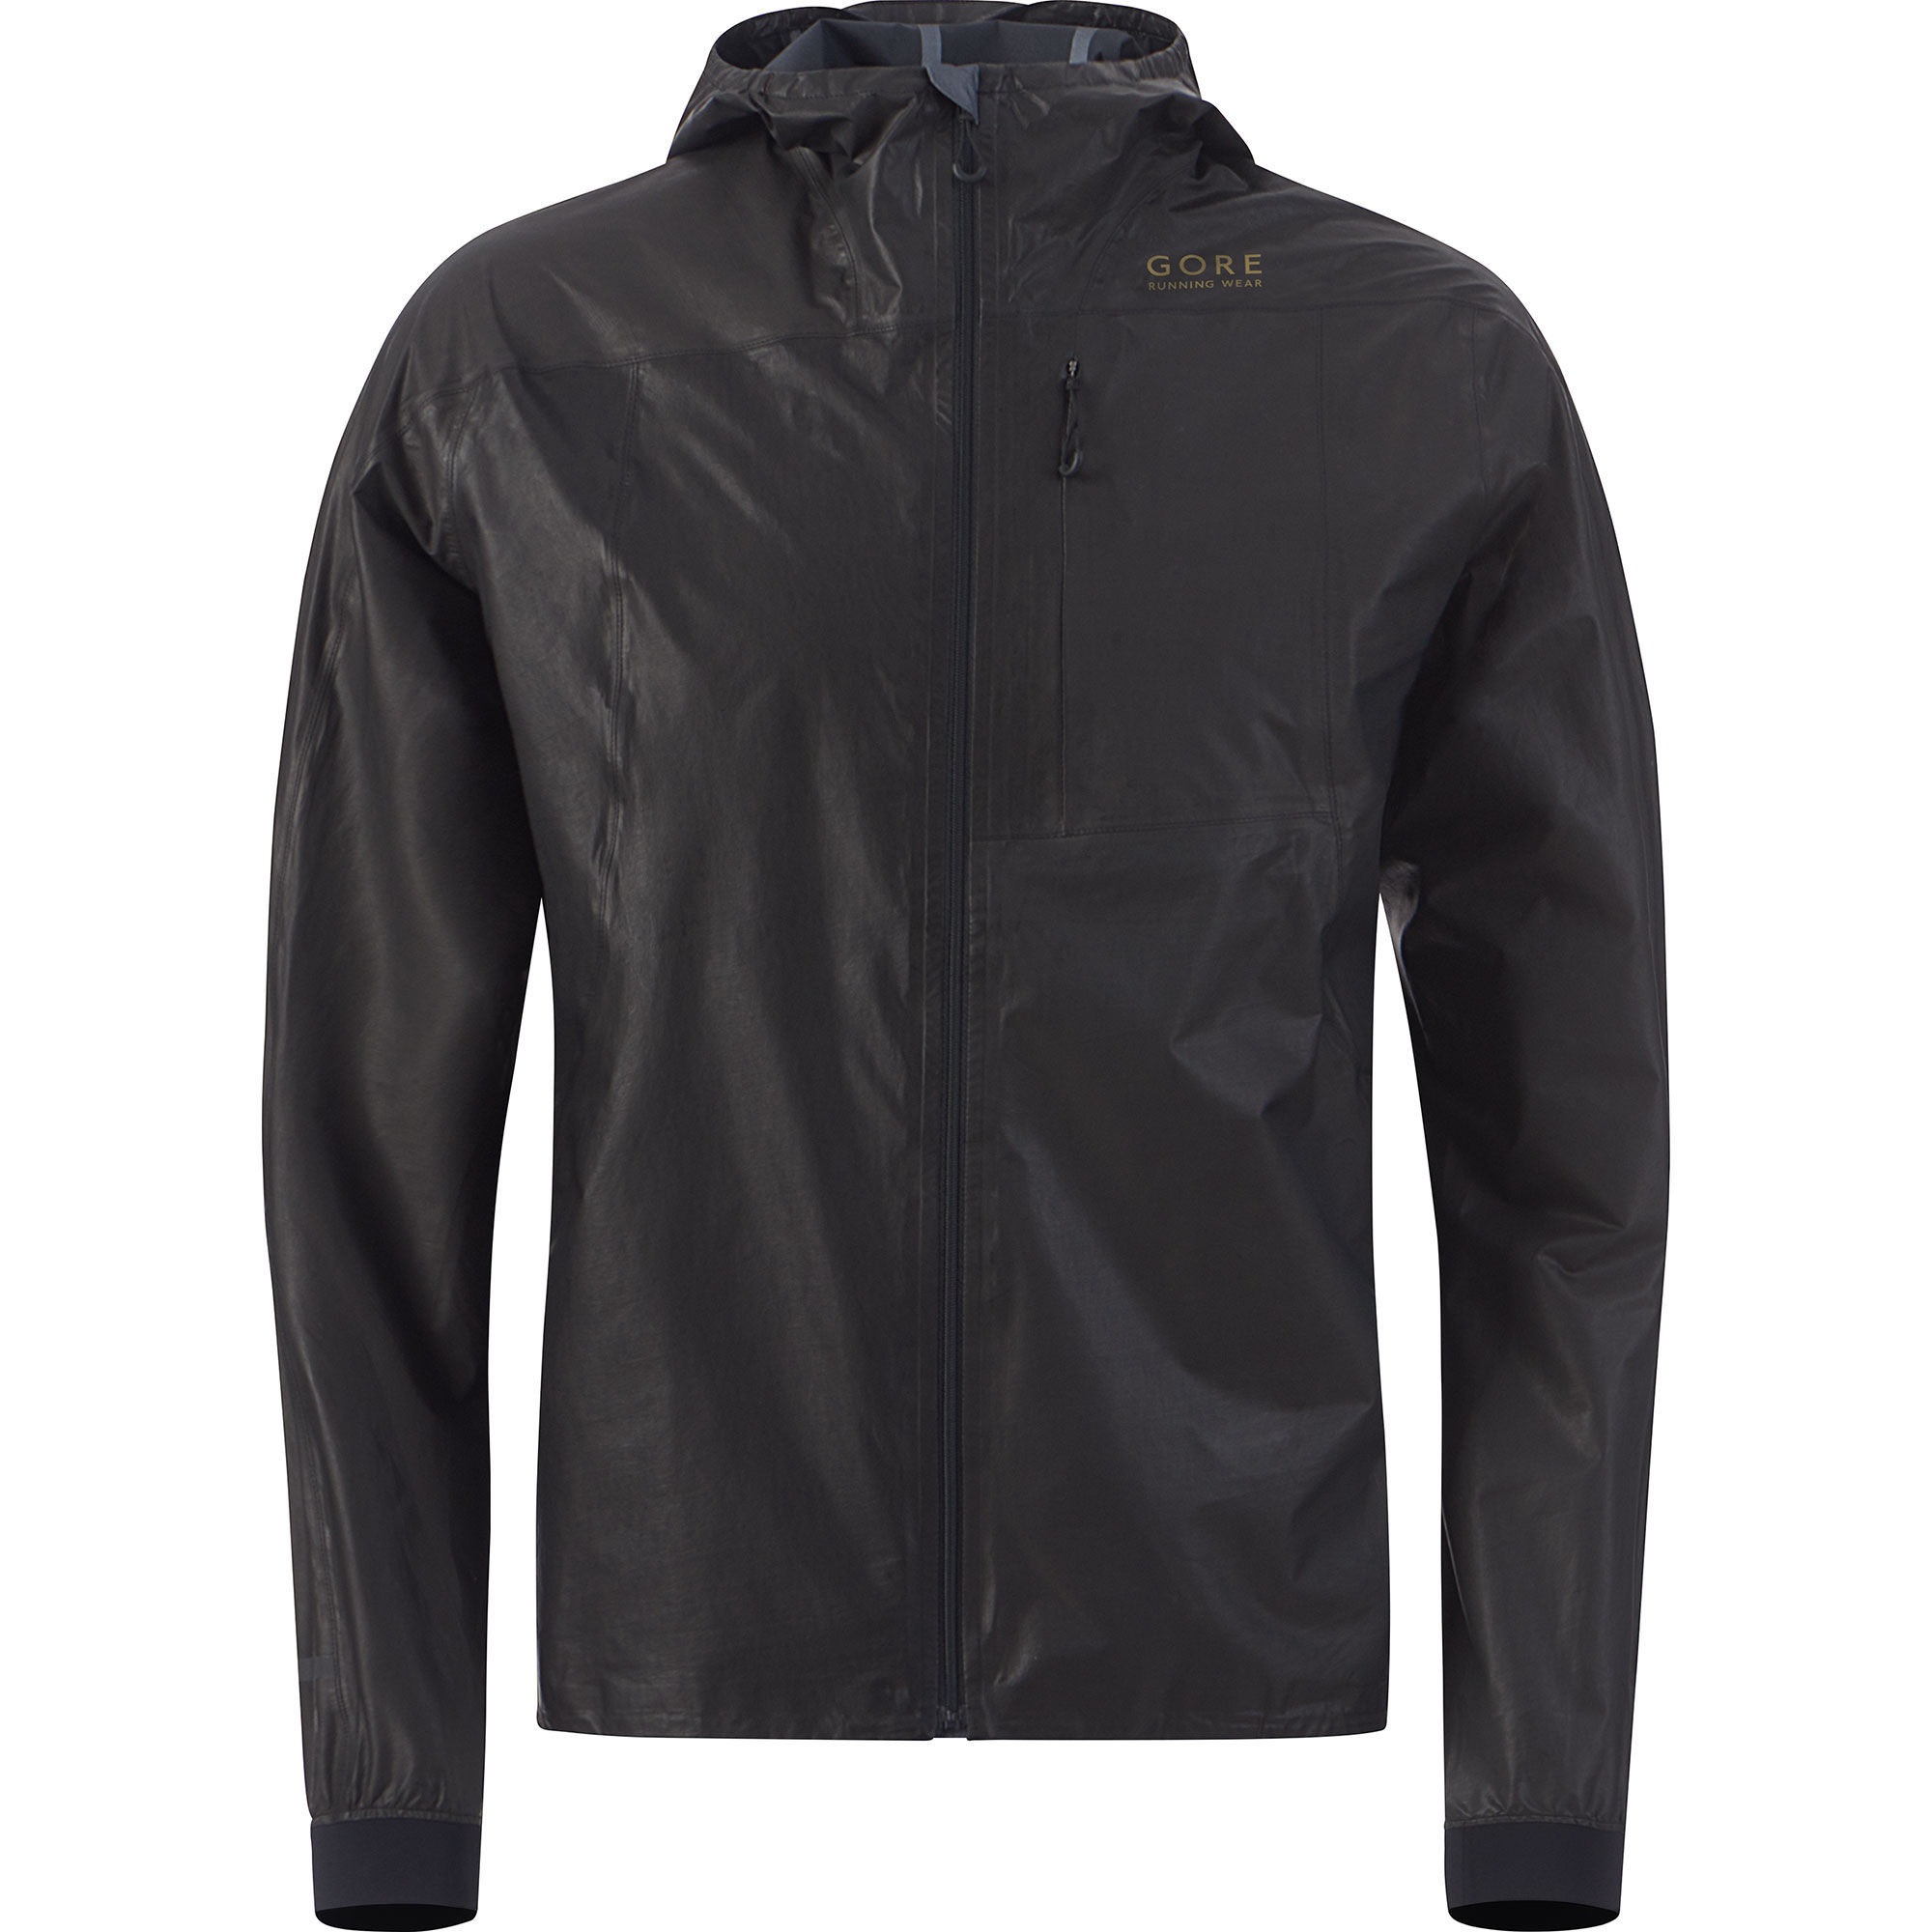 Wiggle Gore Running Wear One Gore Tex 174 Active Run Jacket